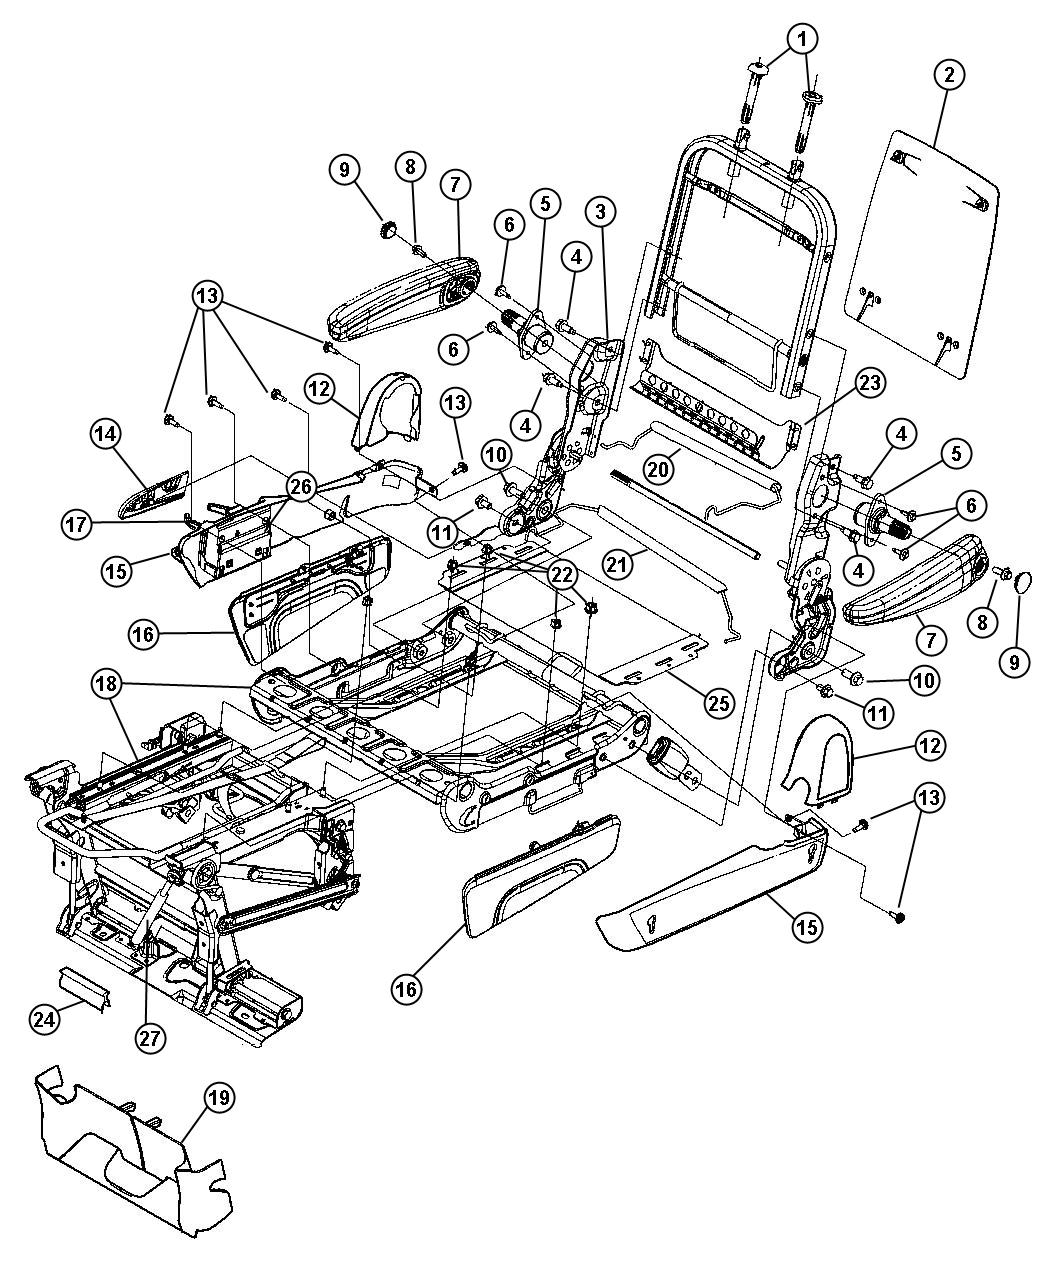 hight resolution of 2005 chrysler town and country parts diagram seat fuse box diagram for 2002 chrysler town and